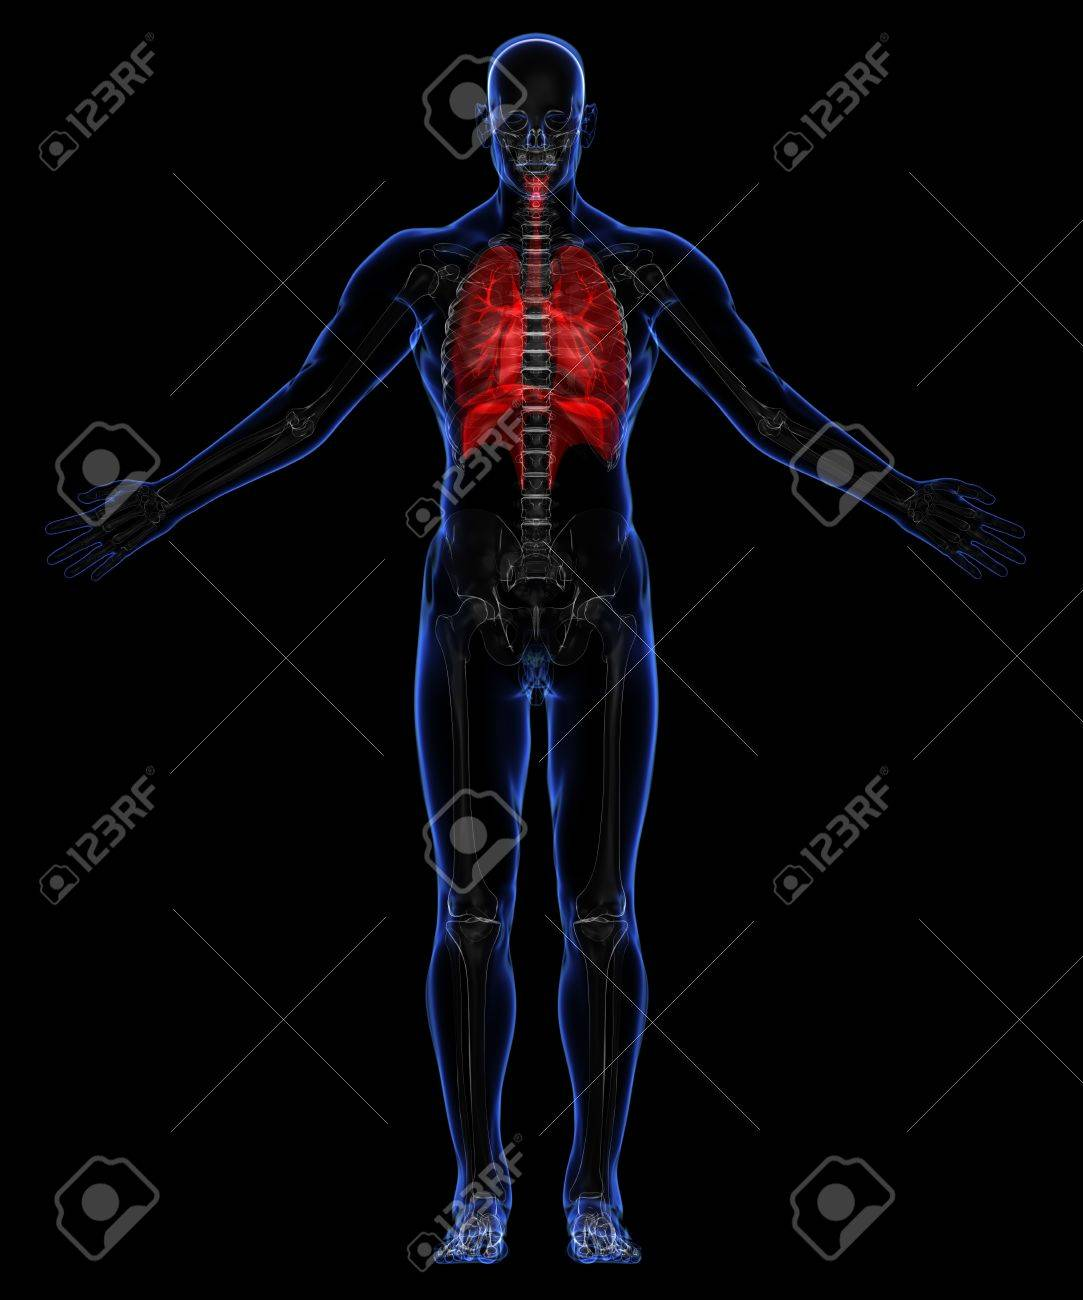 Human skeleton and respiratory system Stock Photo - 18292524